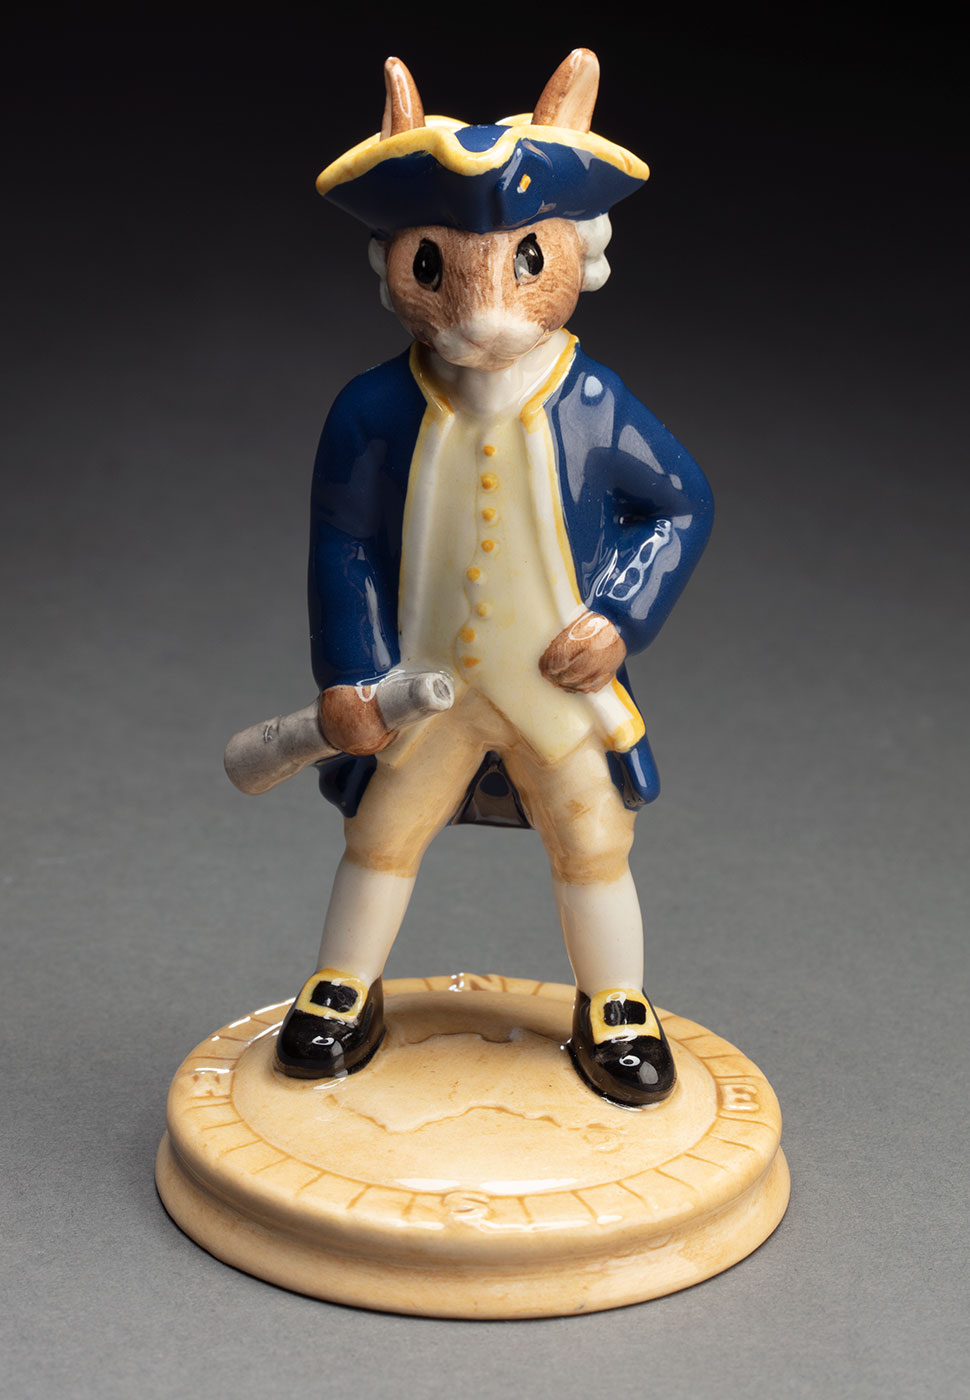 Ceramic figurine of a rabbit with the body of a human wearing period clothing. - click to view larger image